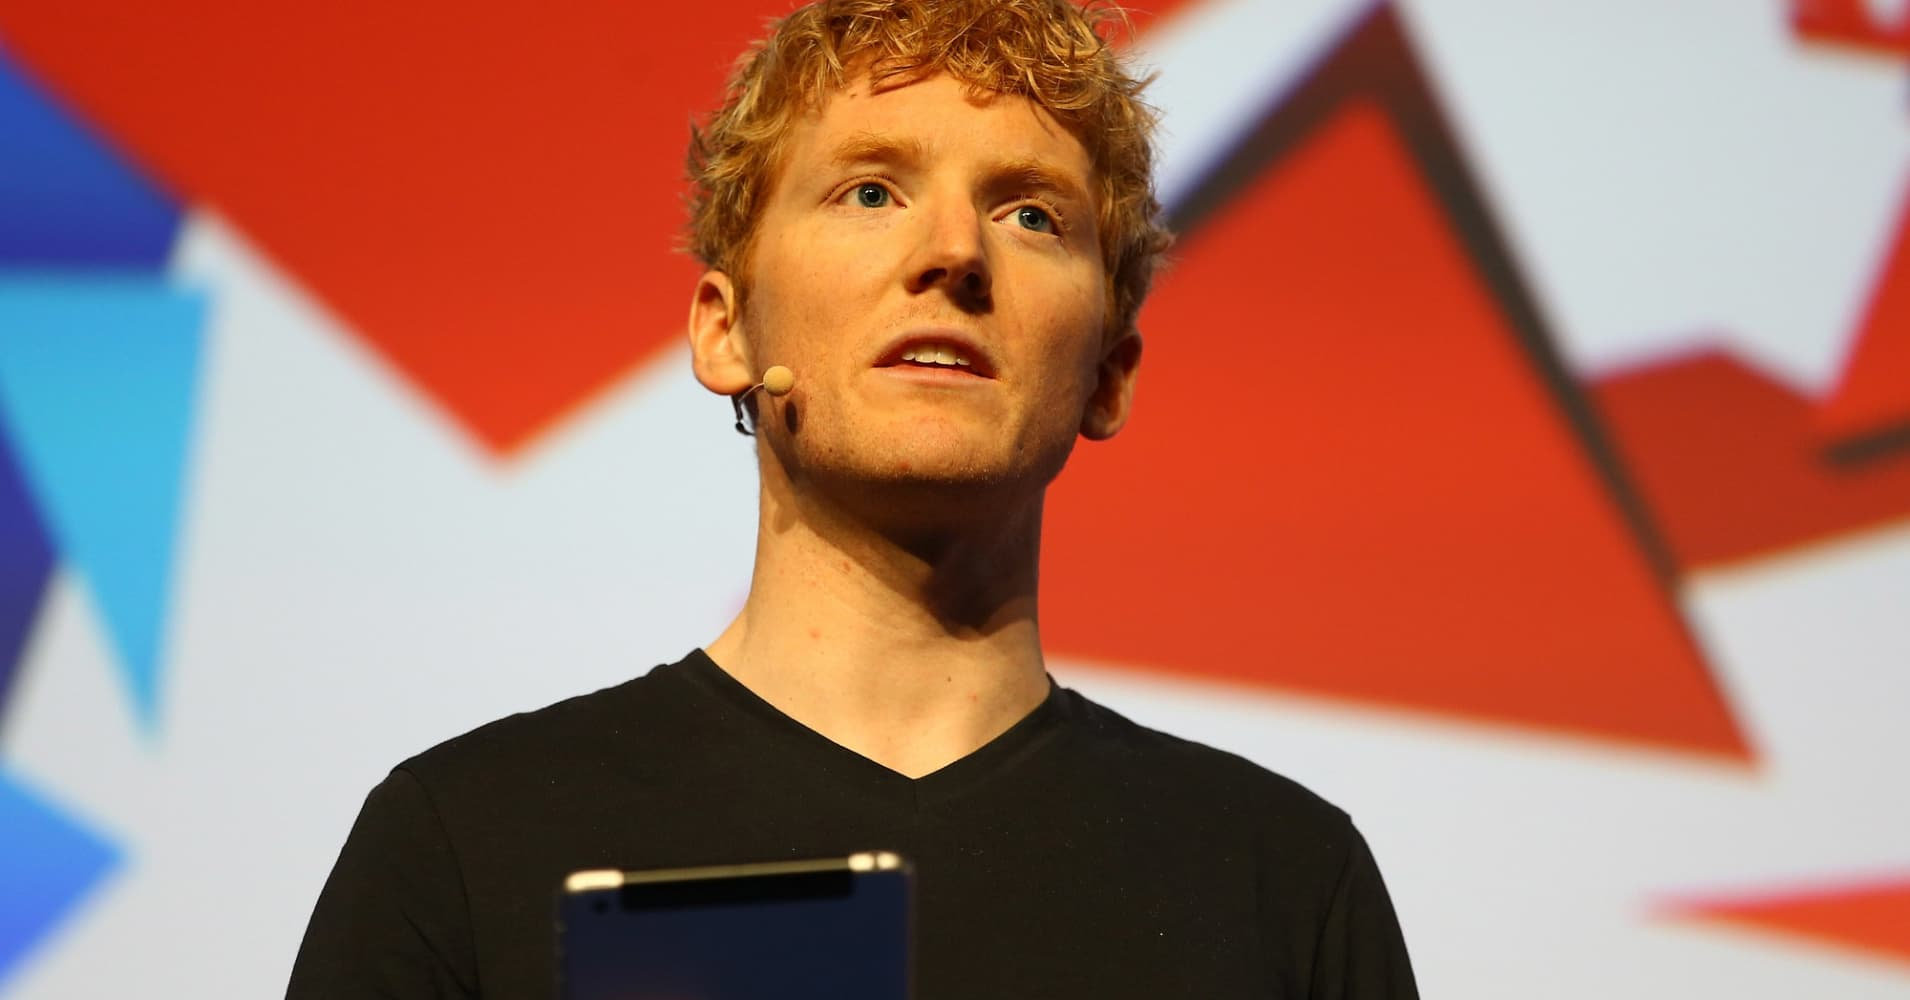 America's immigration policies are hurting start-ups, Stripe CEO Patrick Collison says